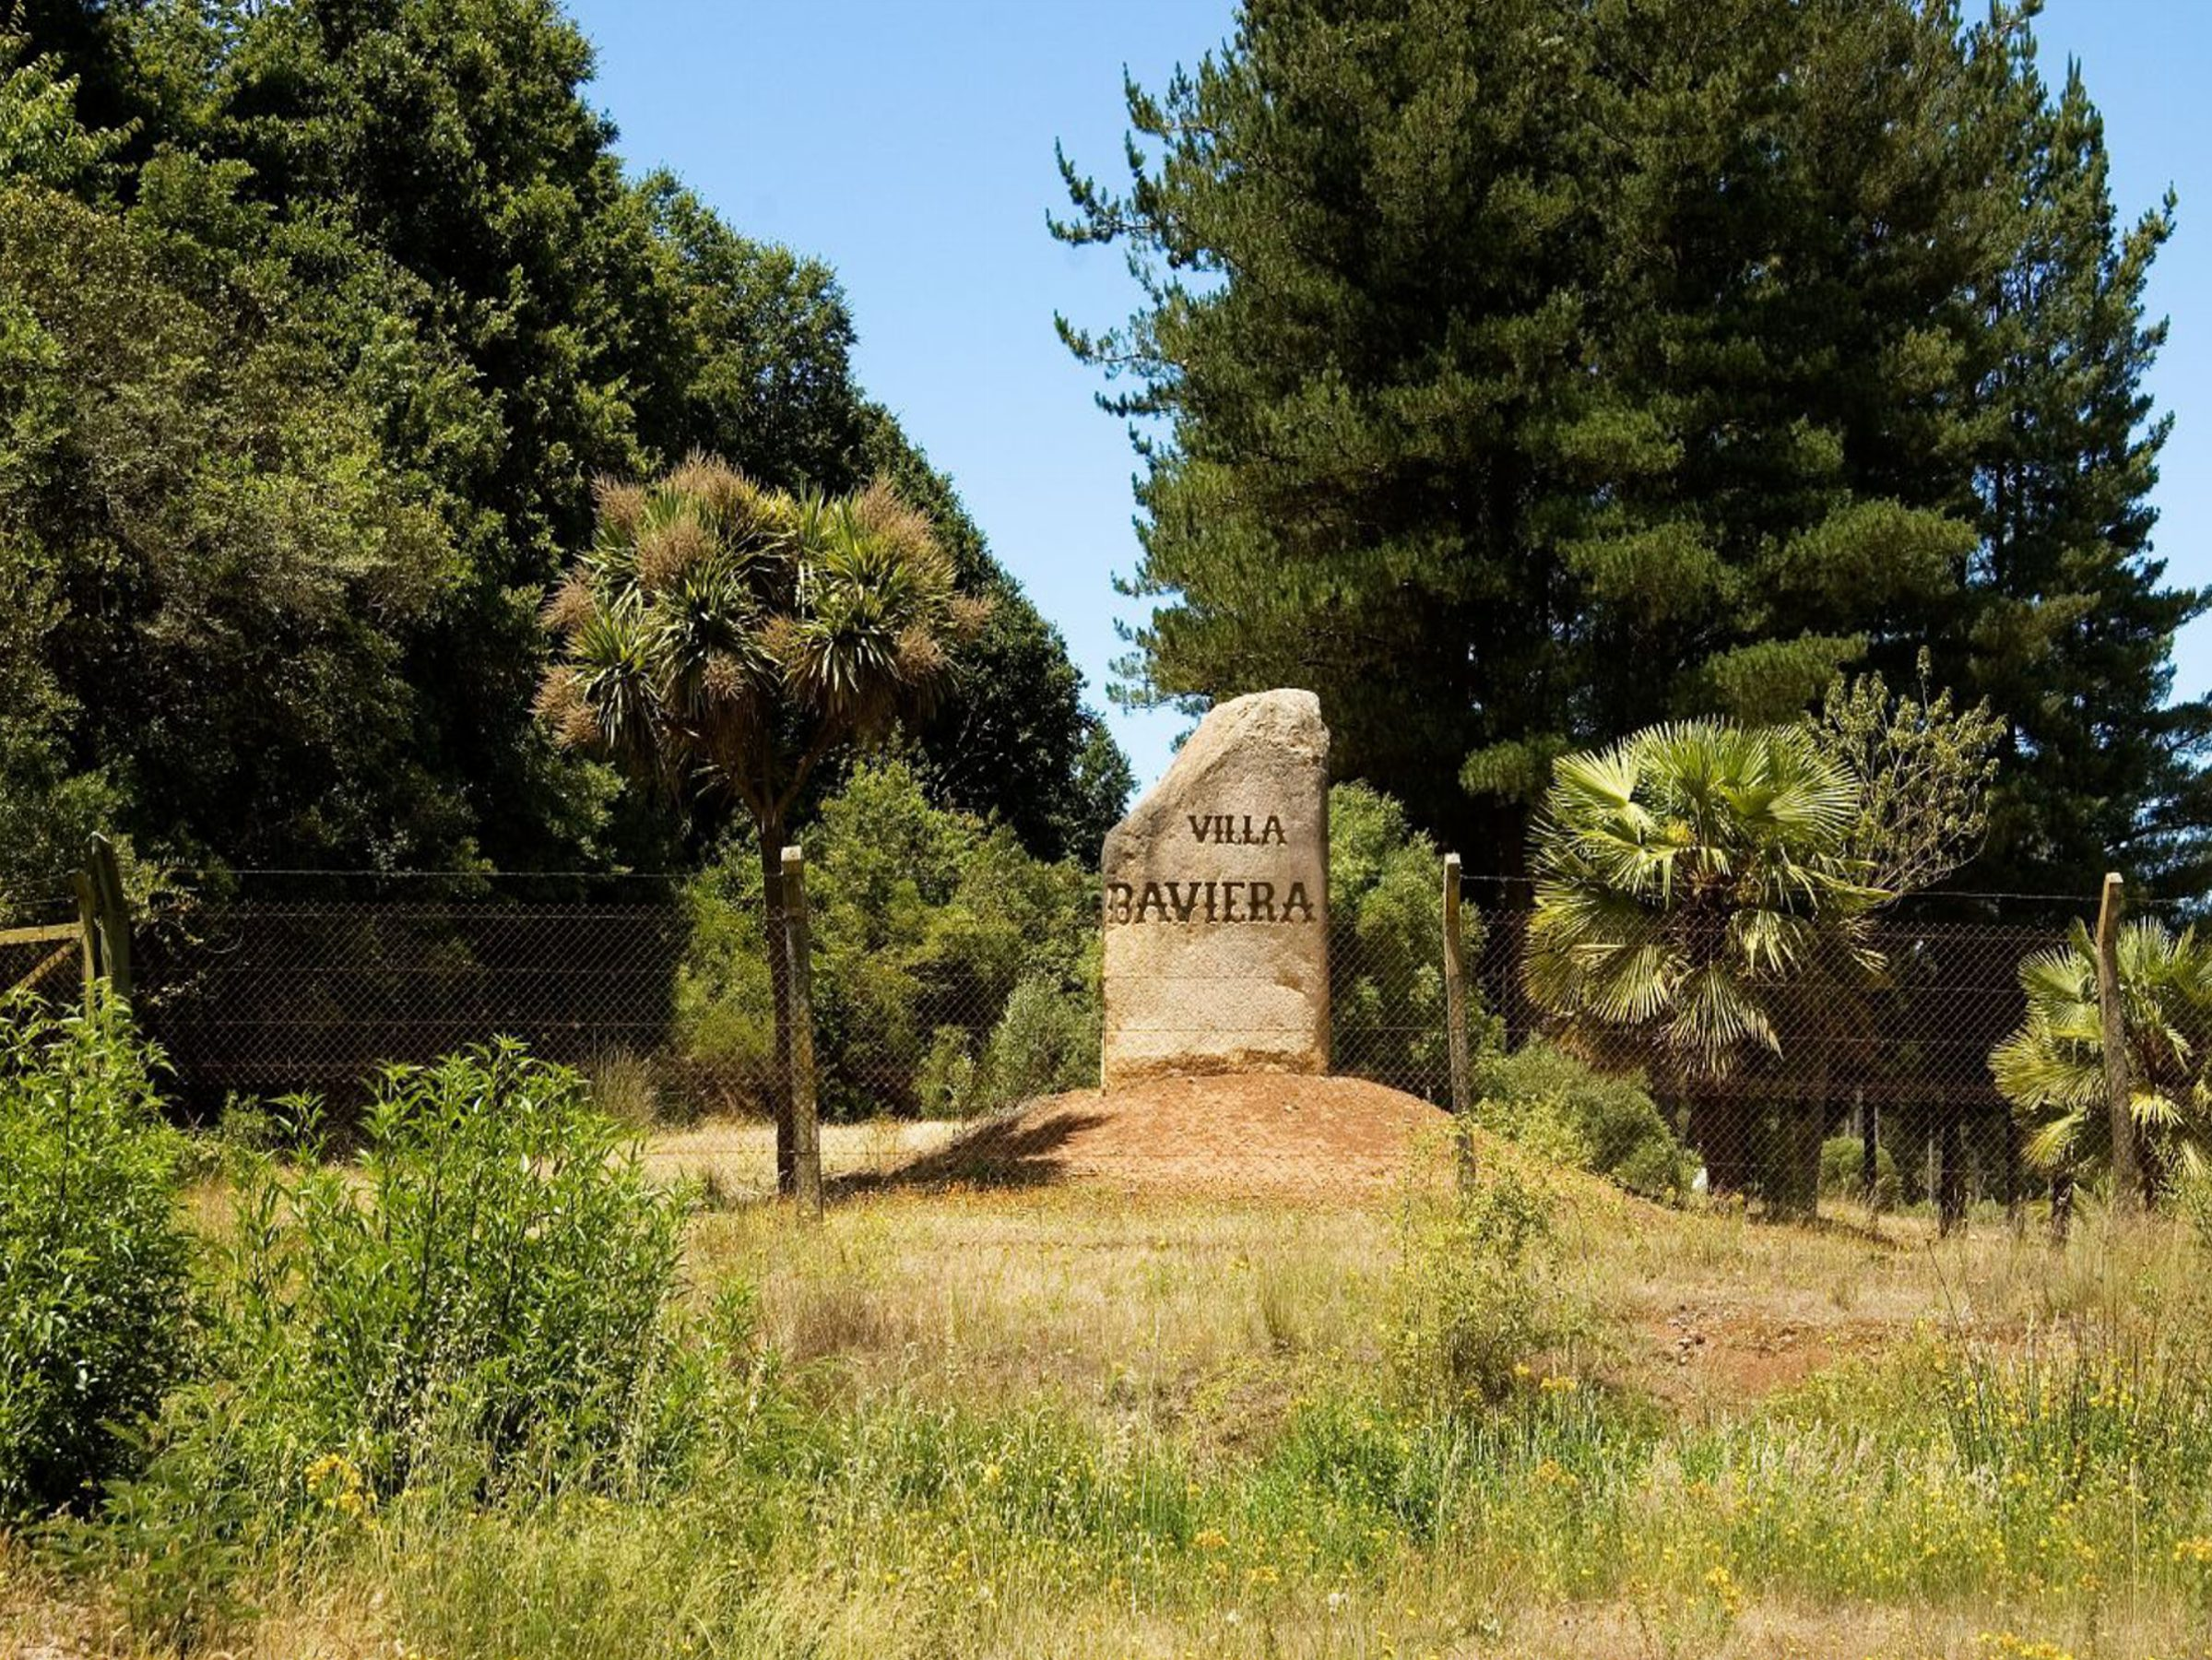 Hotels In Colonia Dignidad Chile